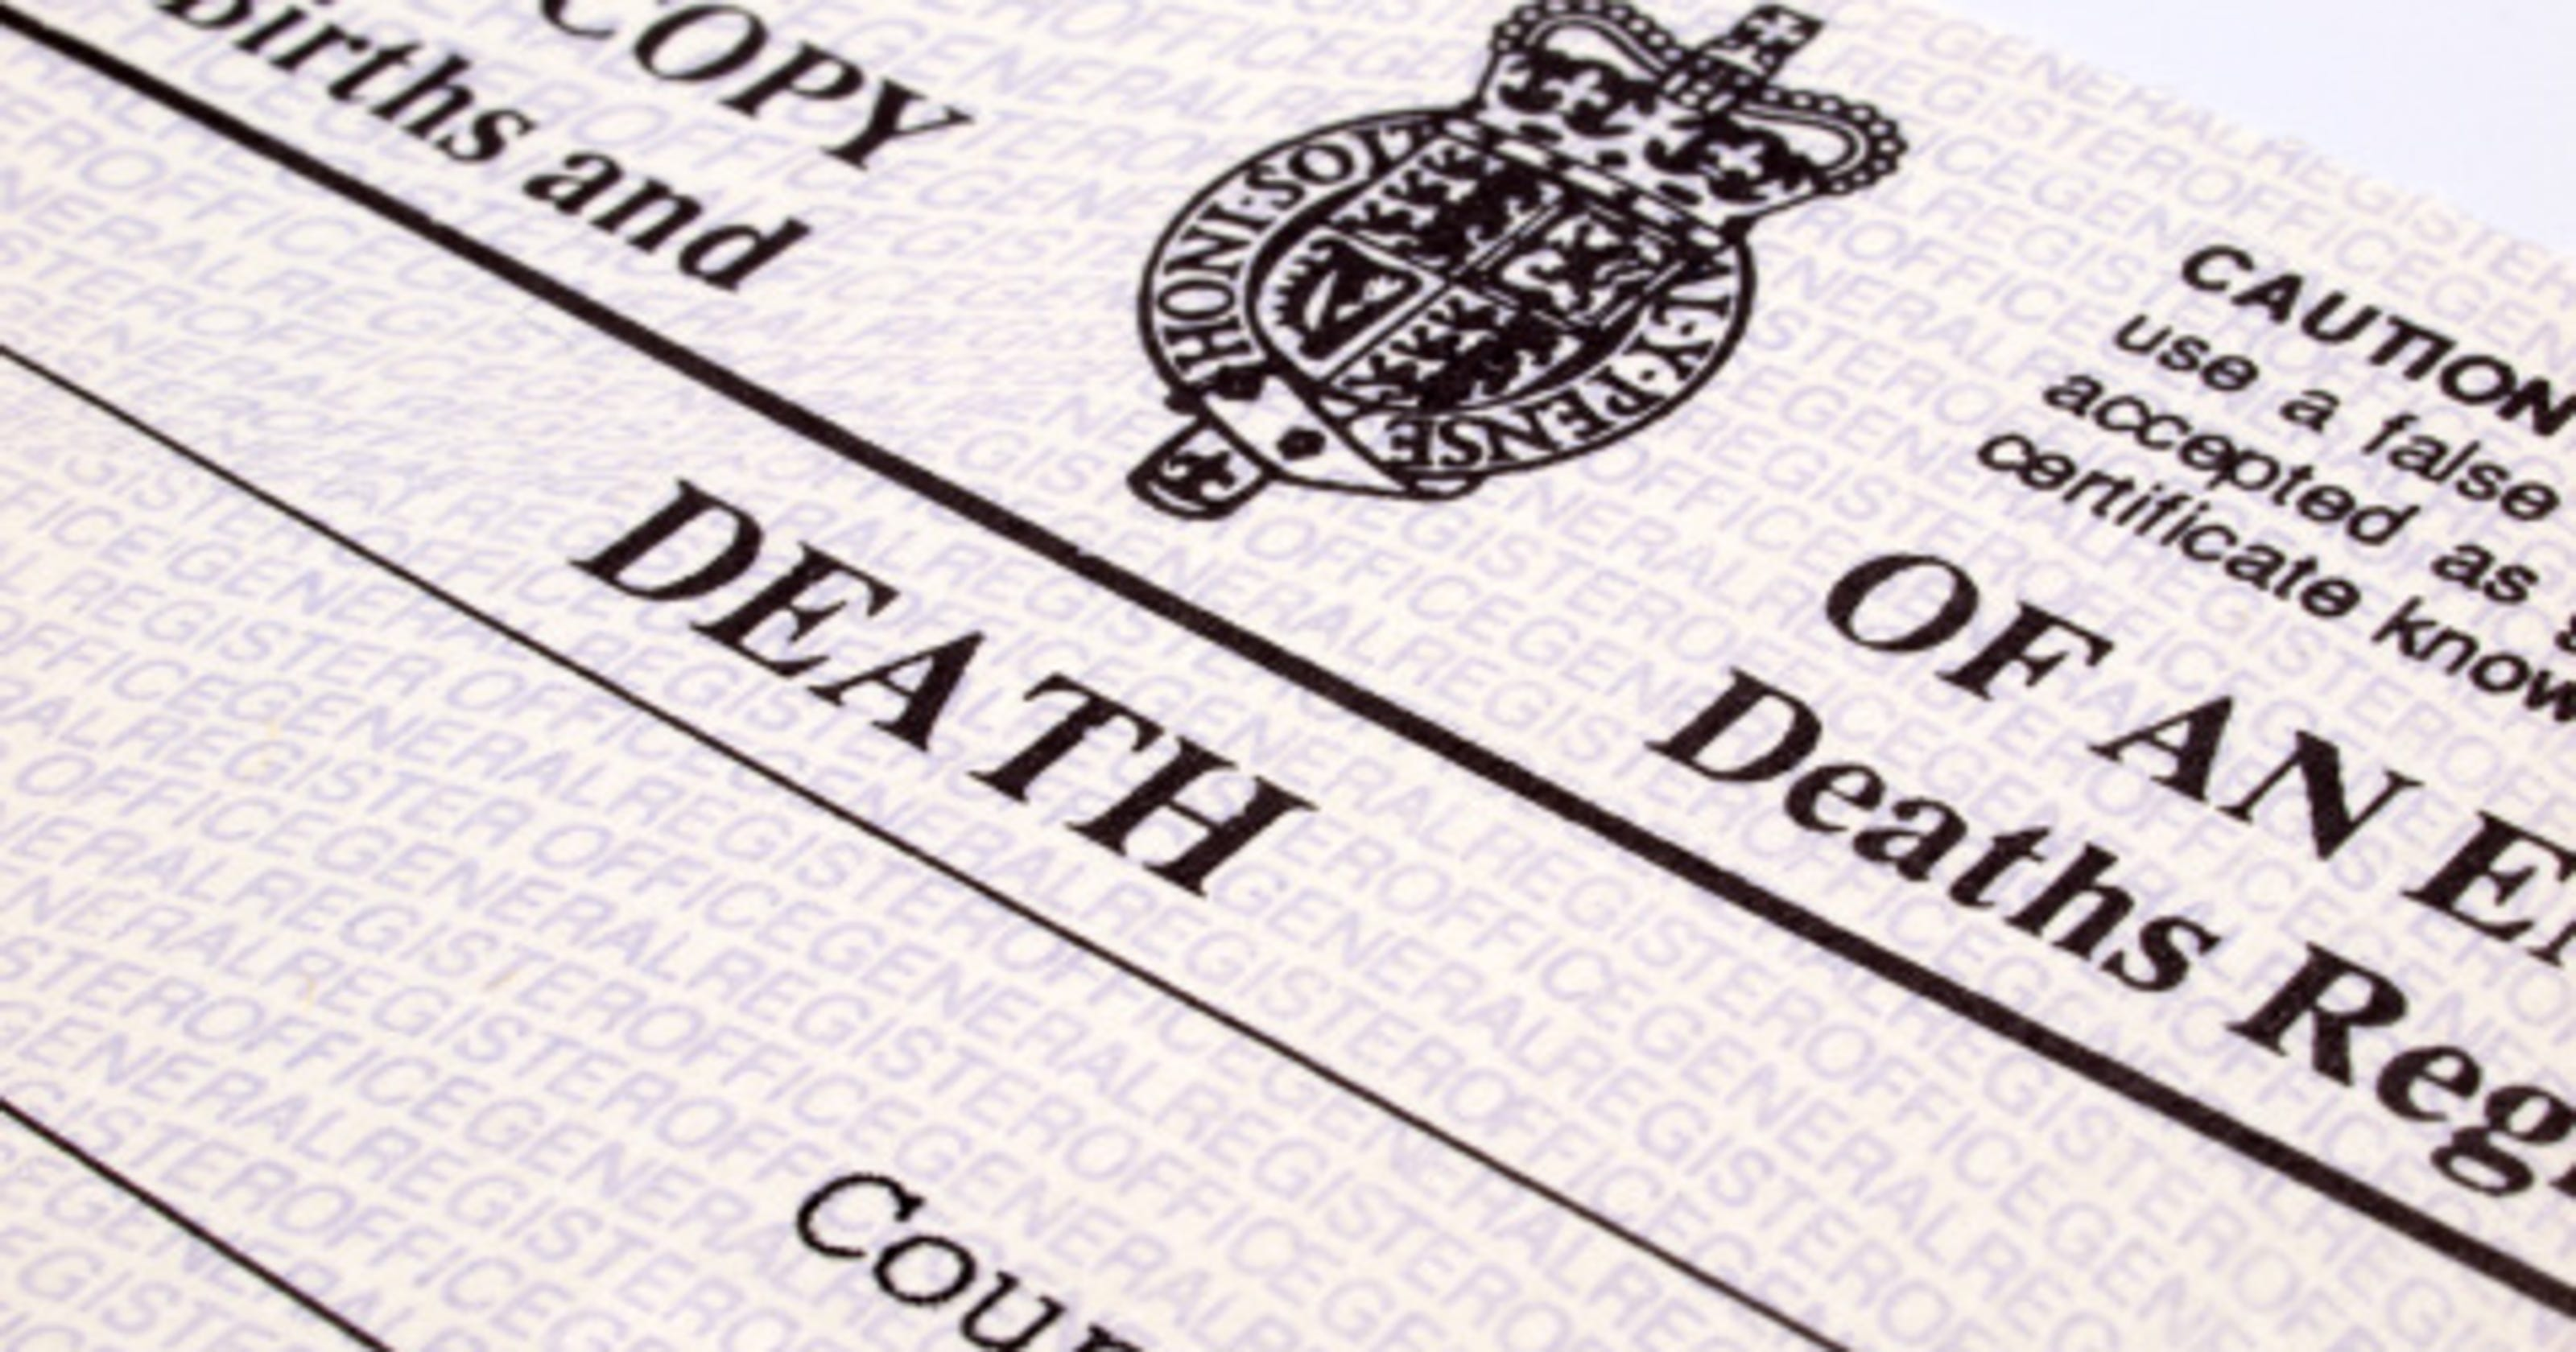 Public Record Causes Of Death In Evansville July 31 Aug 5